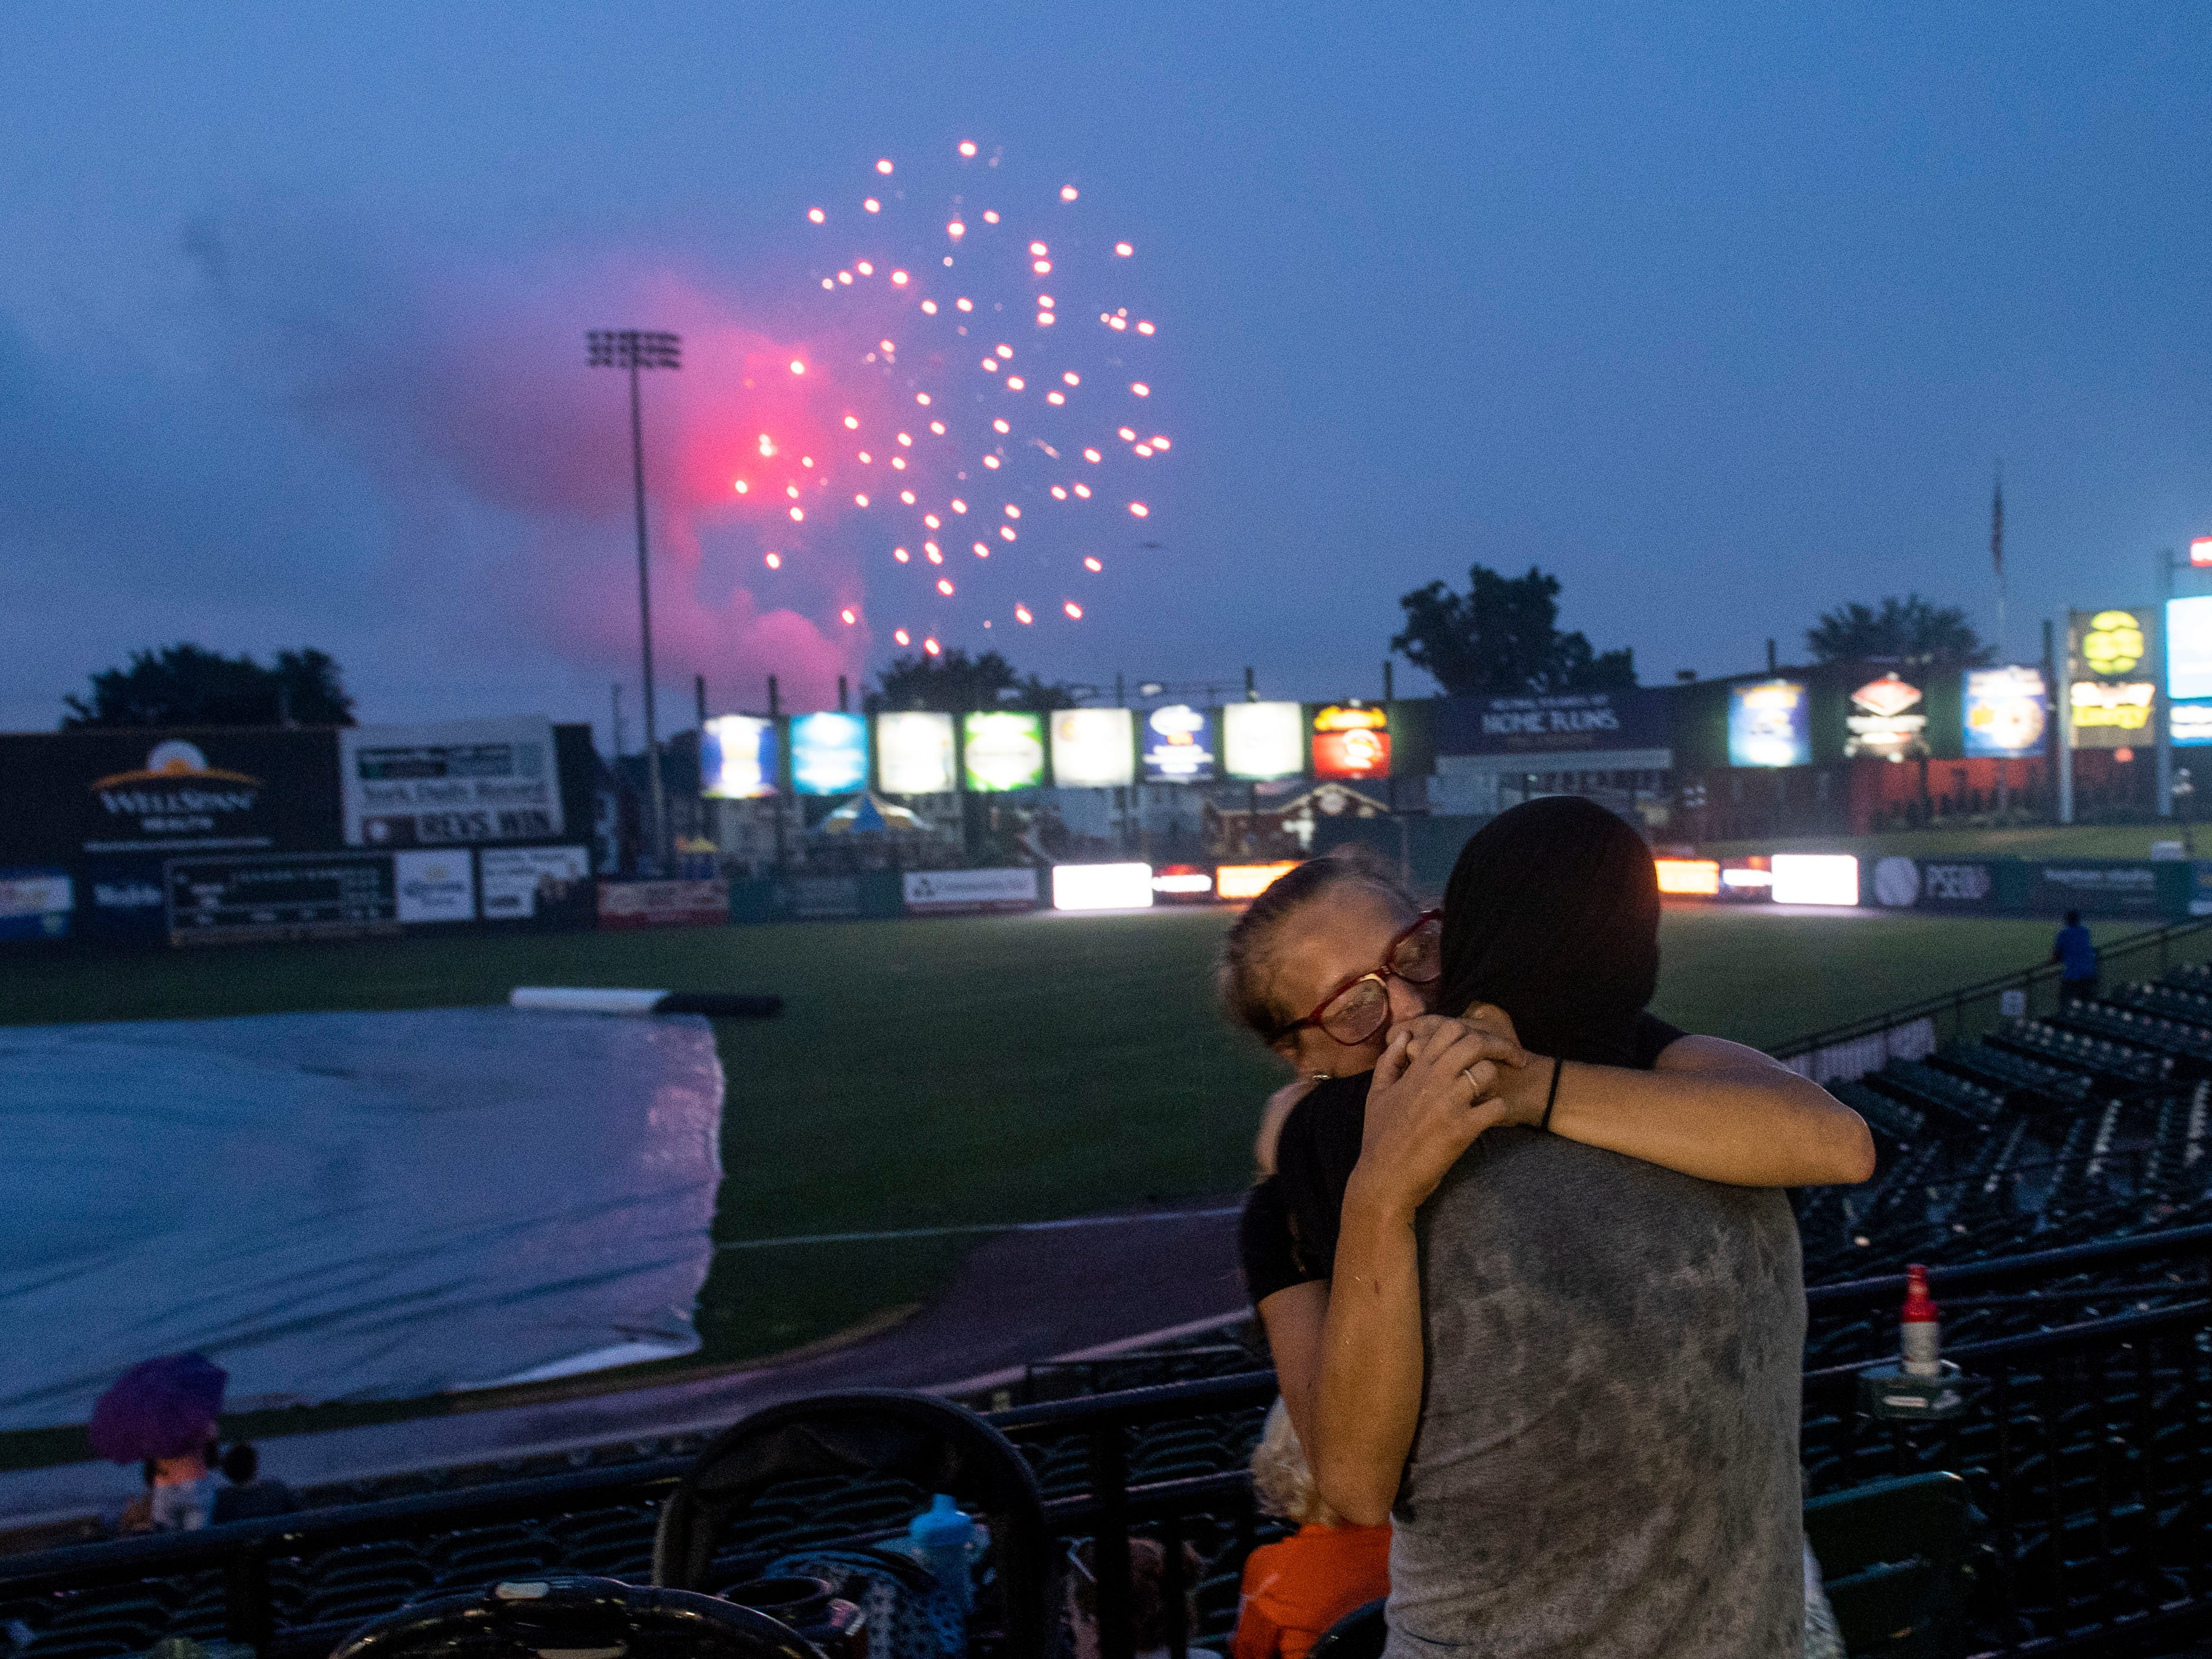 A couple embraces during fireworks at PeoplesBank Stadium following the York Revolution game, Wednesday, July 4, 2018.